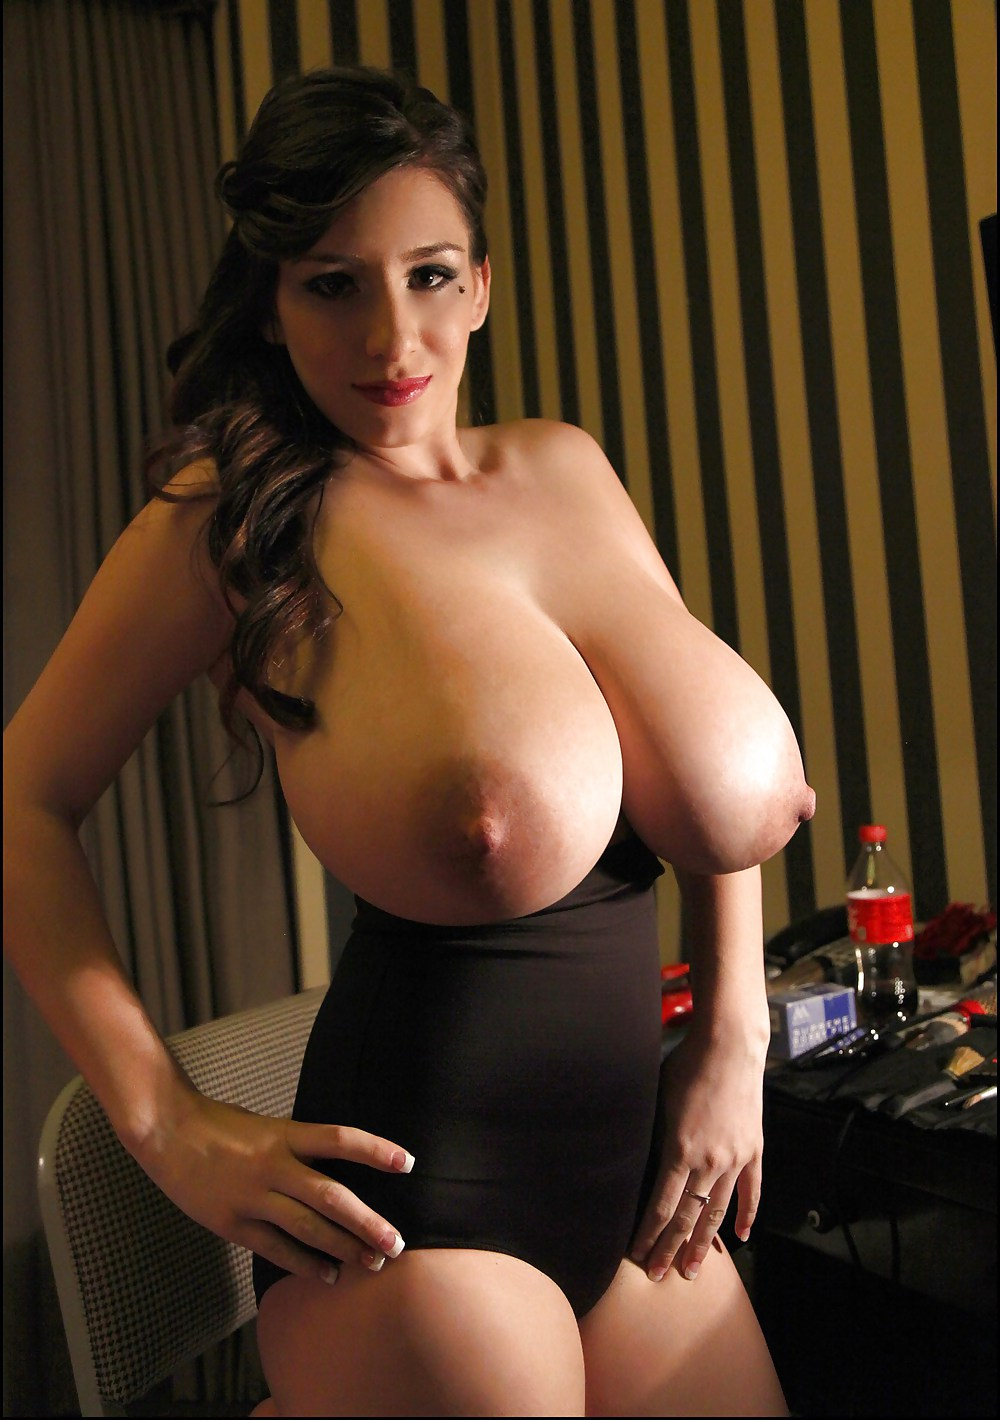 Thick solo girl alana lace sets her huge tits free of sweater and bra